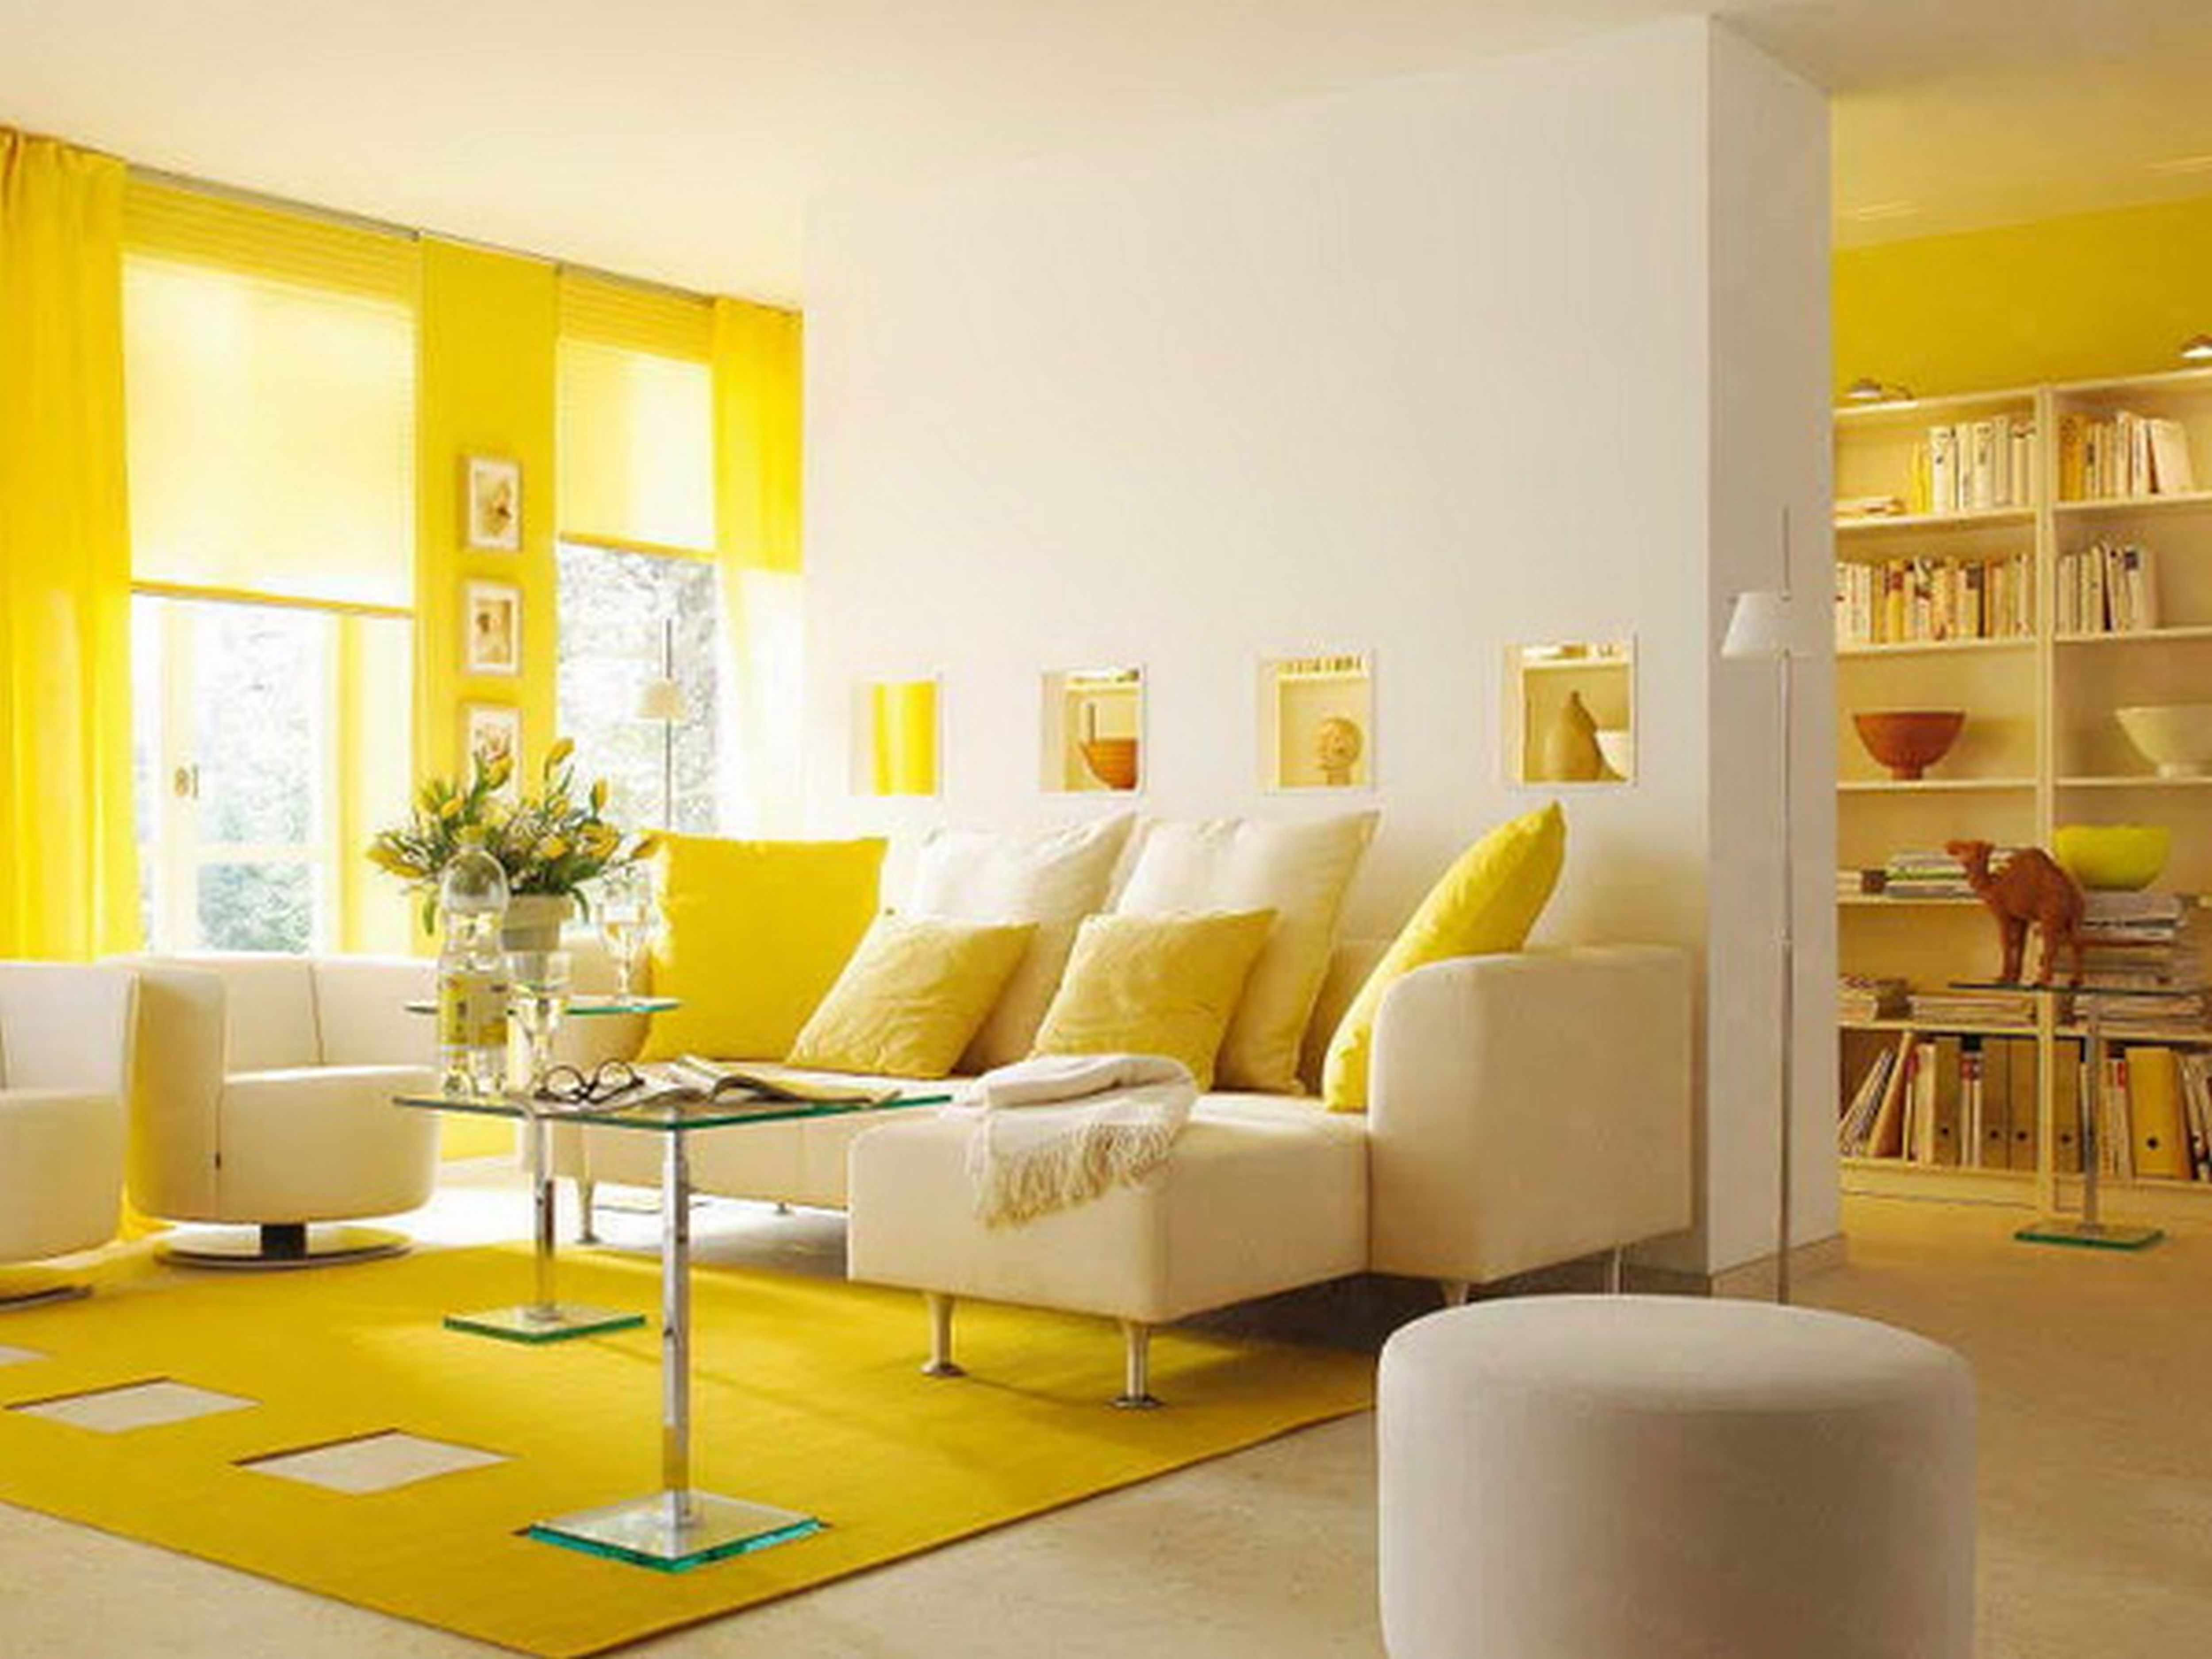 5 Cheerful Applications of Yellow Living Room Ideas - http://www ...